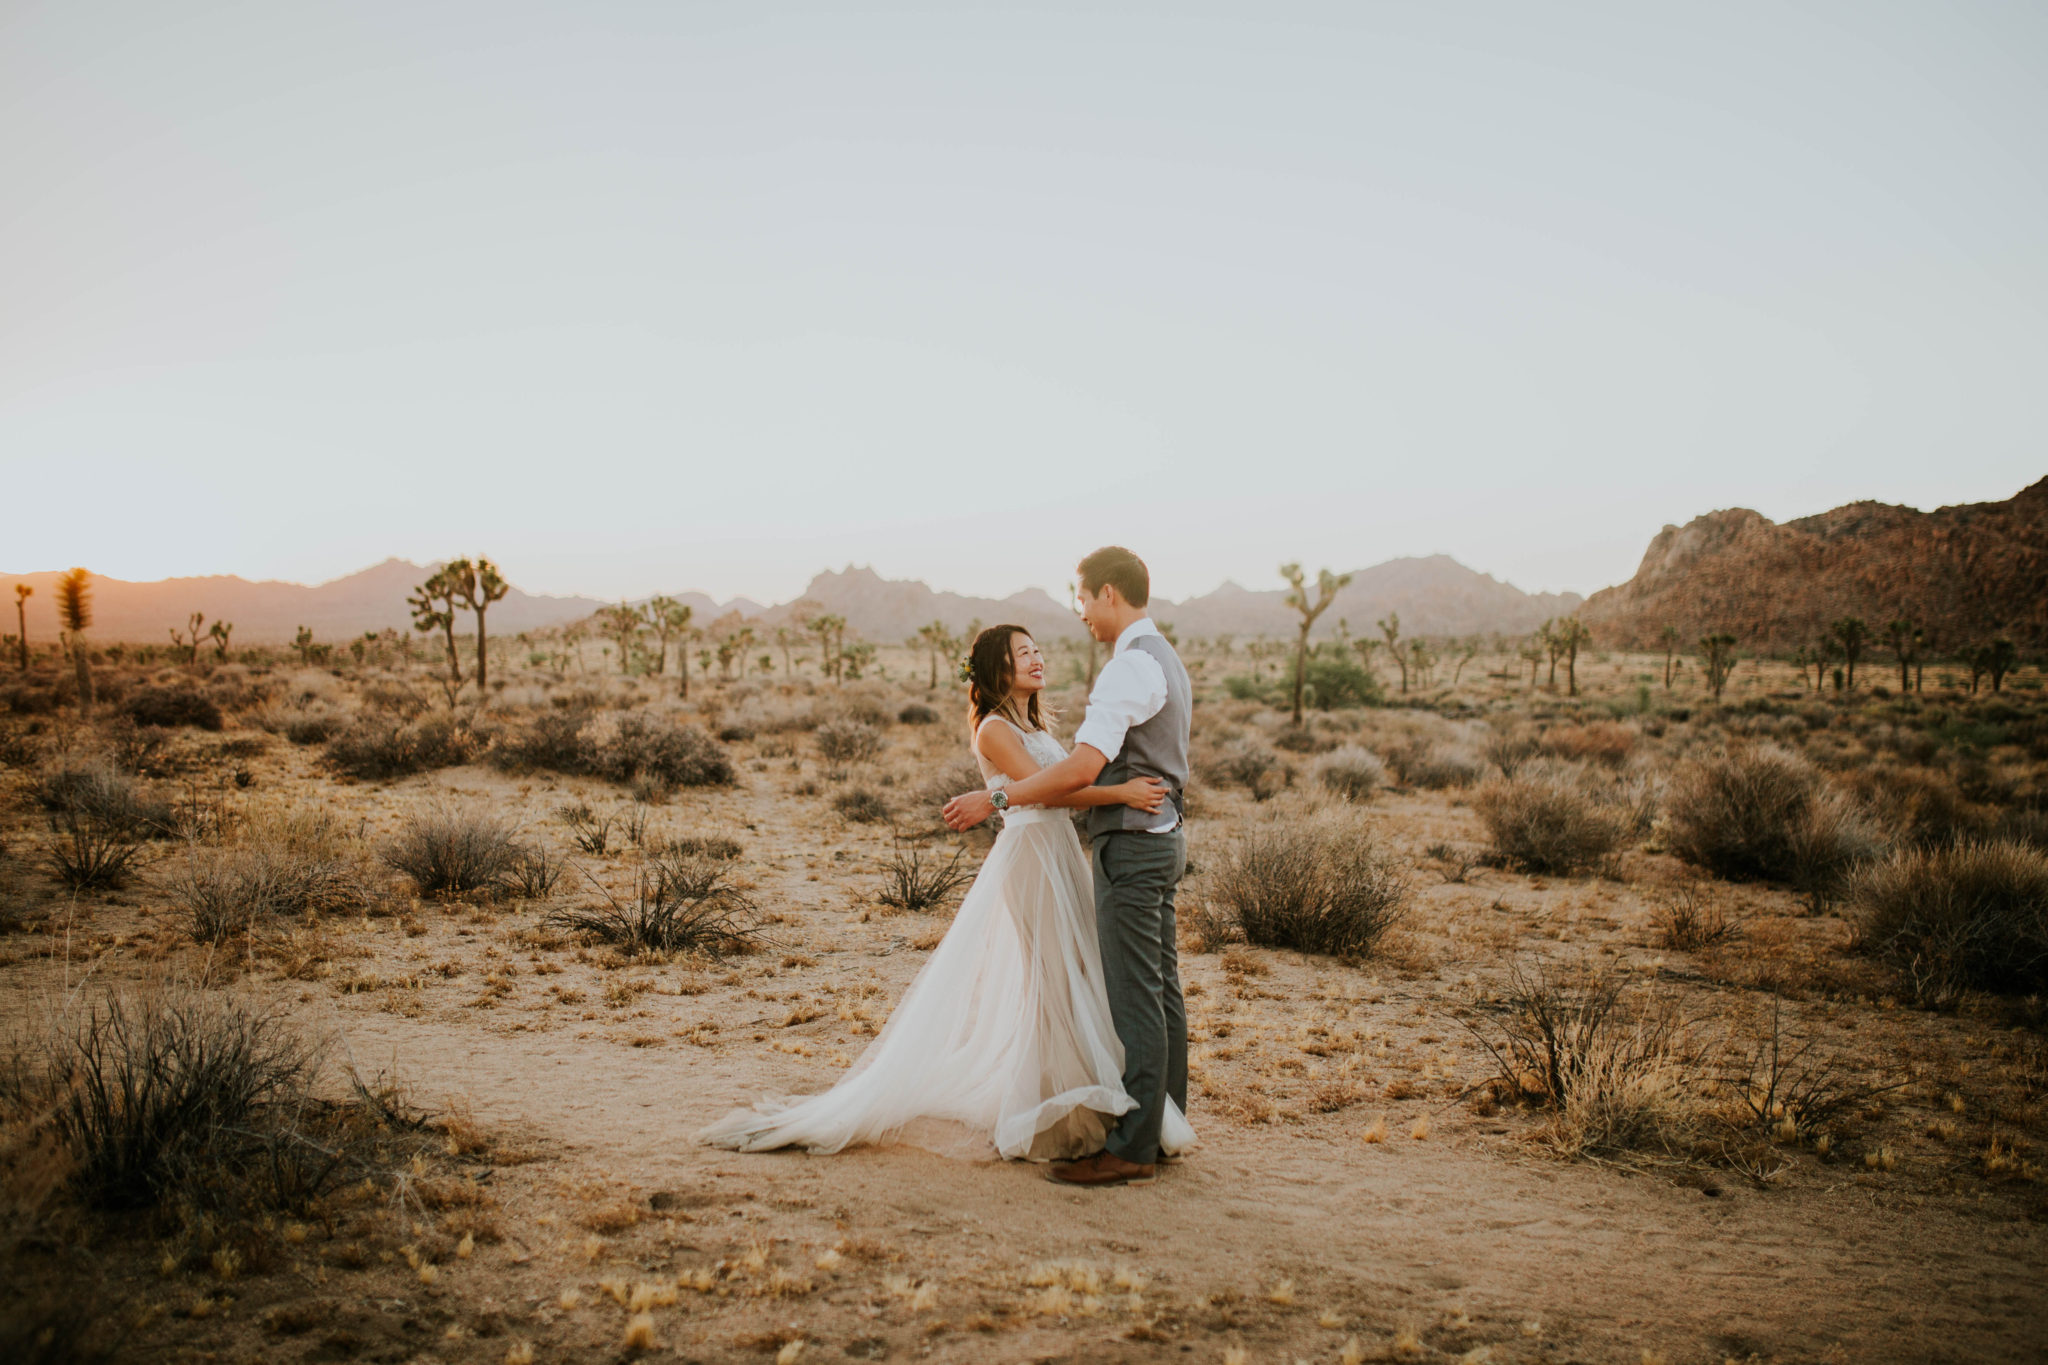 Mandy & Joey Joshua Tree Elopement California Wedding Photographer-283